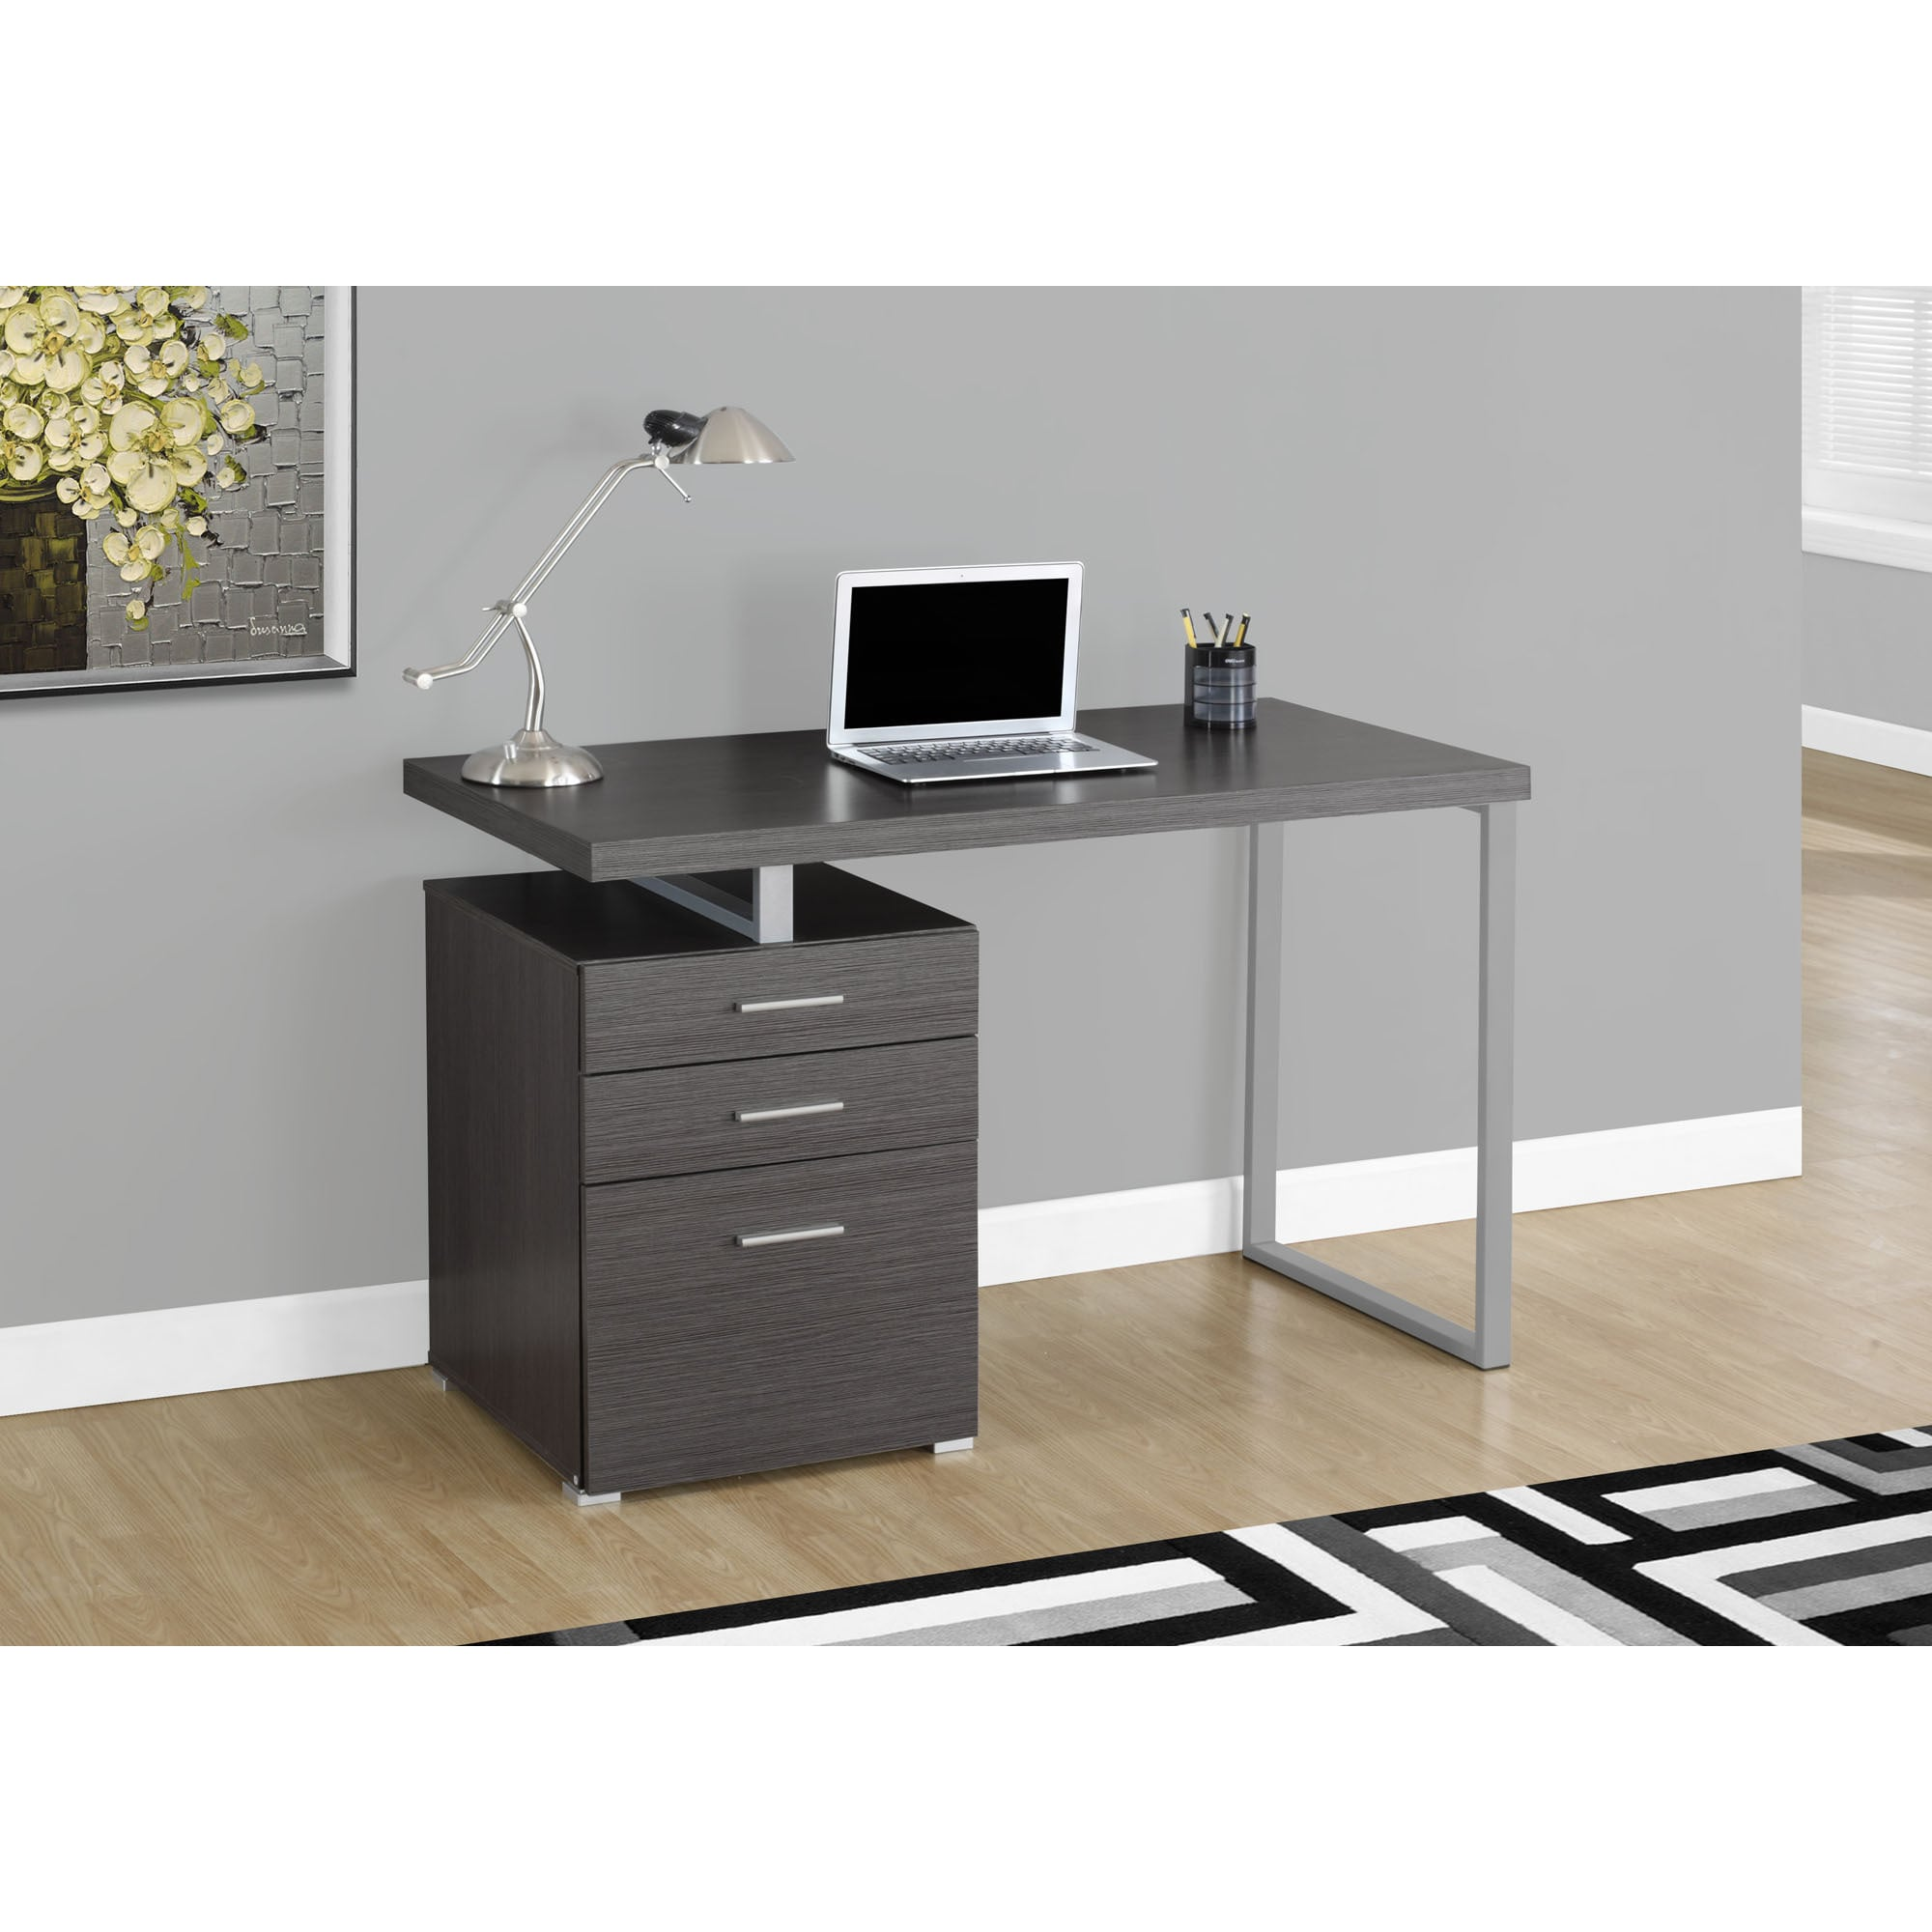 Wondrous Grey 48 Inch Left Or Right Facing Computer Desk Home Interior And Landscaping Dextoversignezvosmurscom